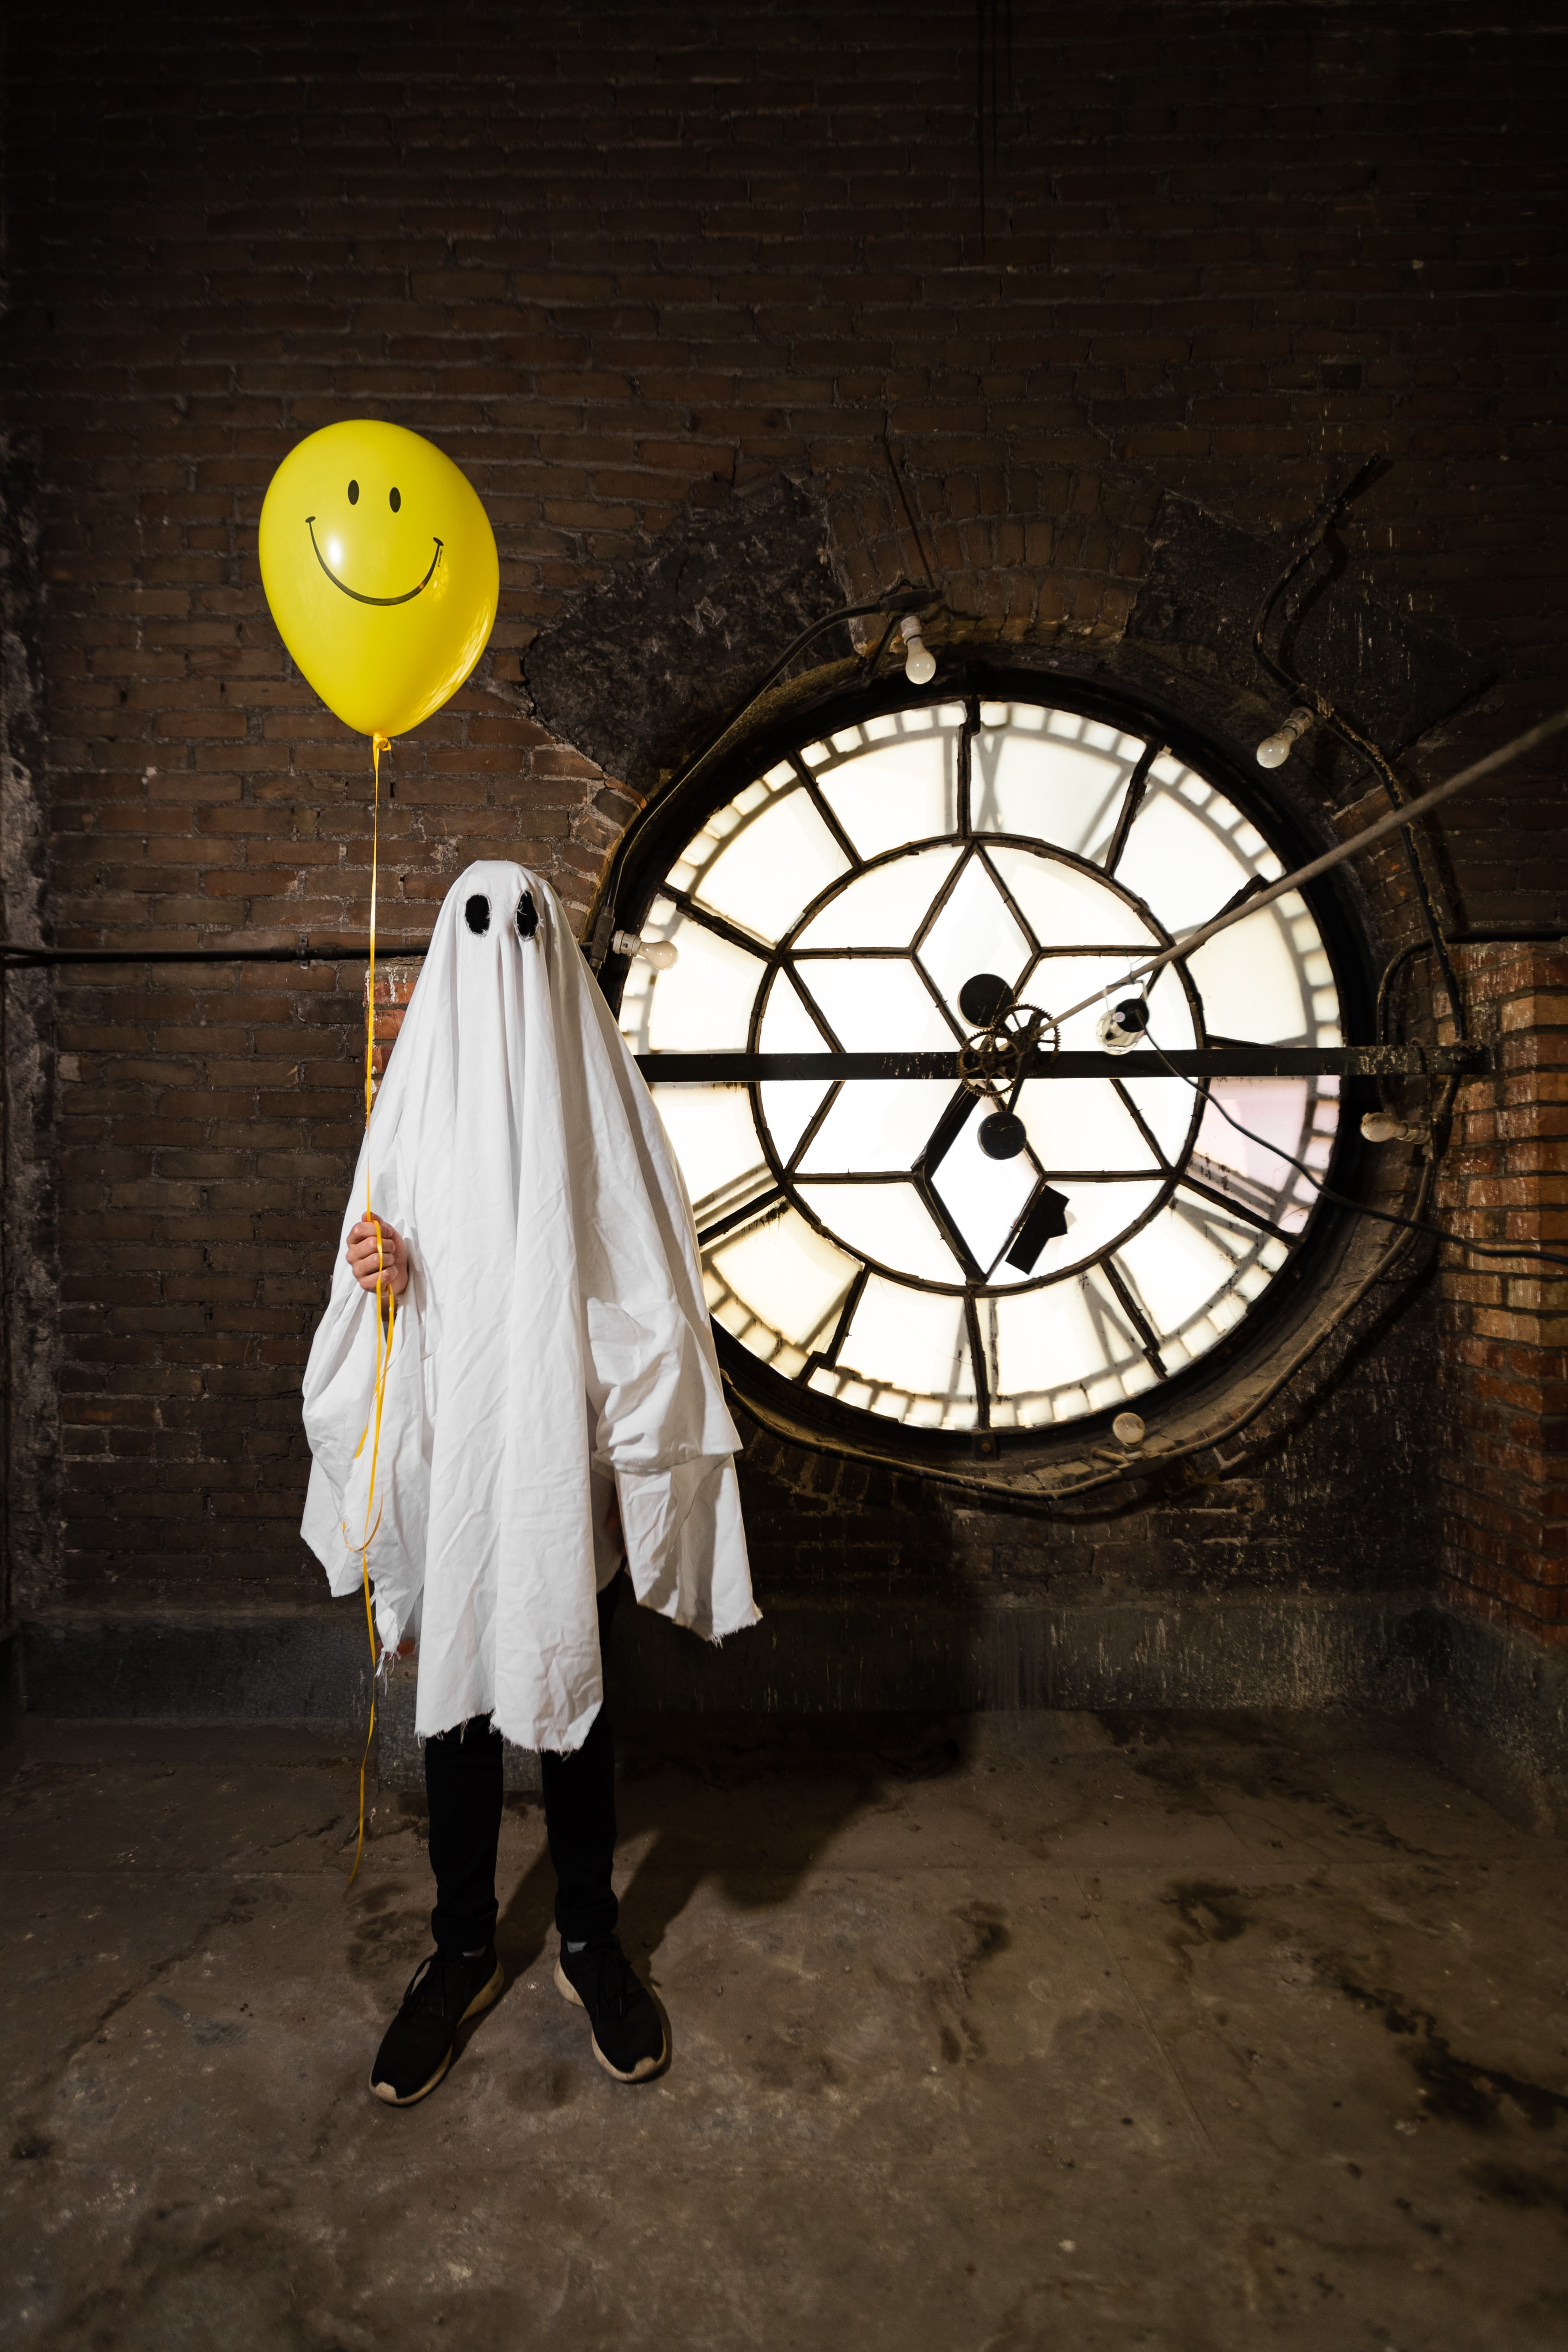 101207 download wallpaper Miscellanea, Miscellaneous, Ghost, Halloween, Outfit, Attire, Smile, Ball screensavers and pictures for free